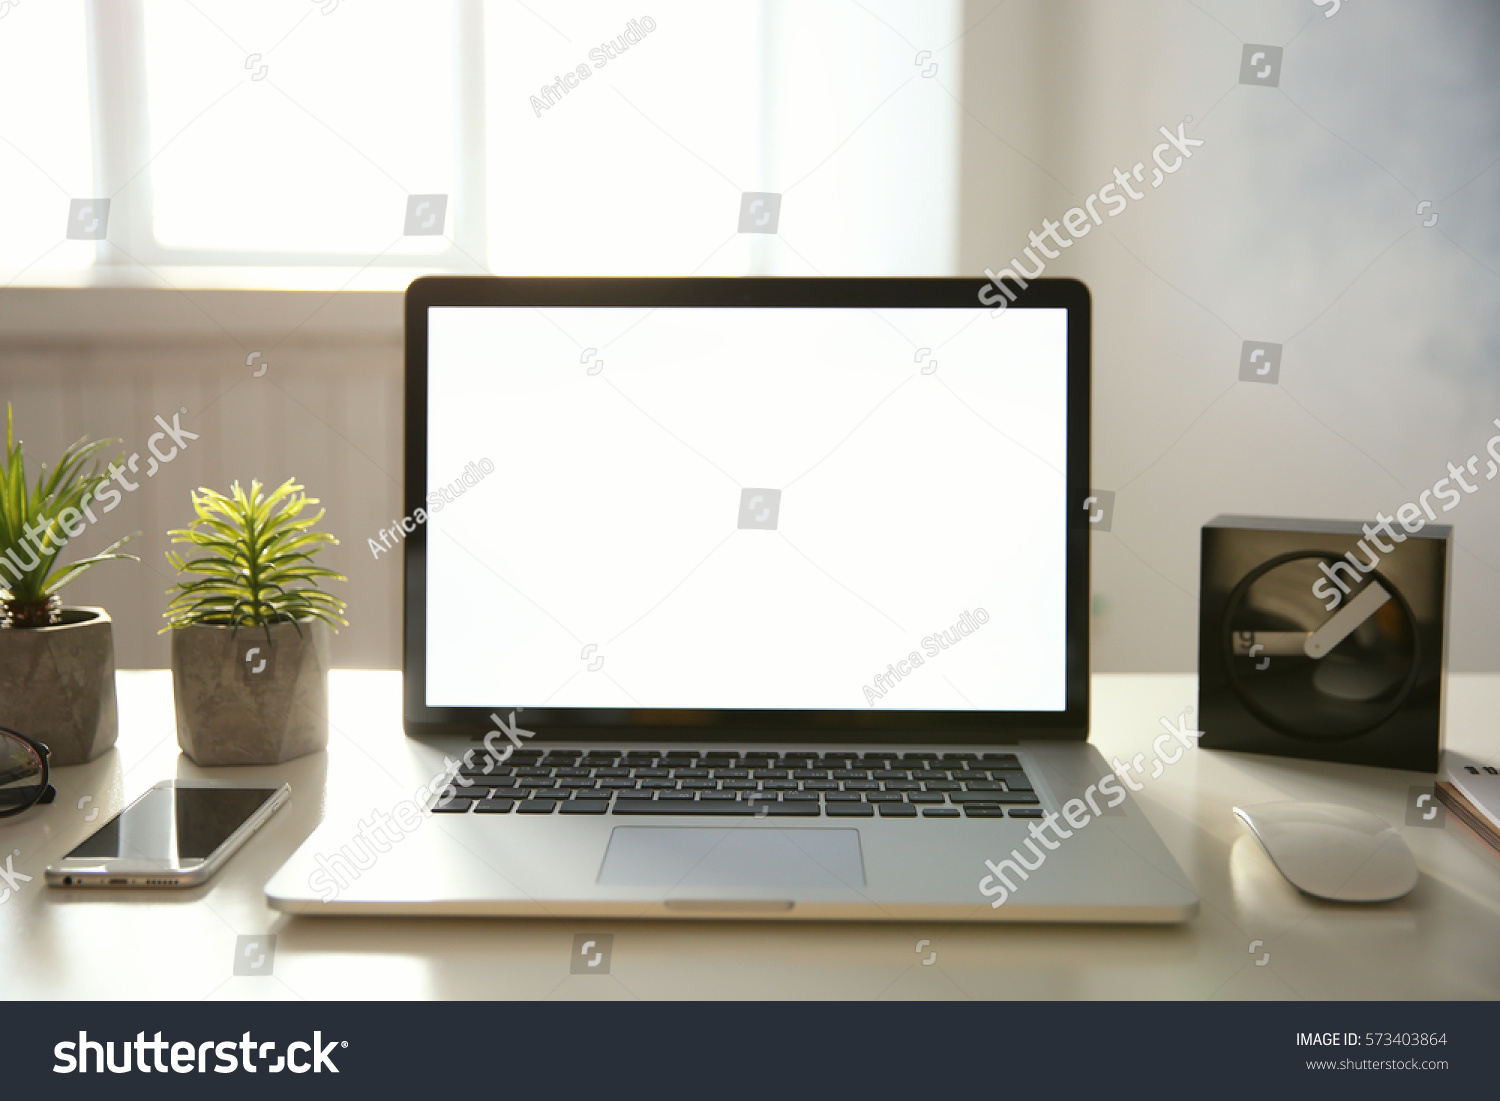 Modern Laptop Table workplace modern laptop on table stock photo 573403864 - shutterstock